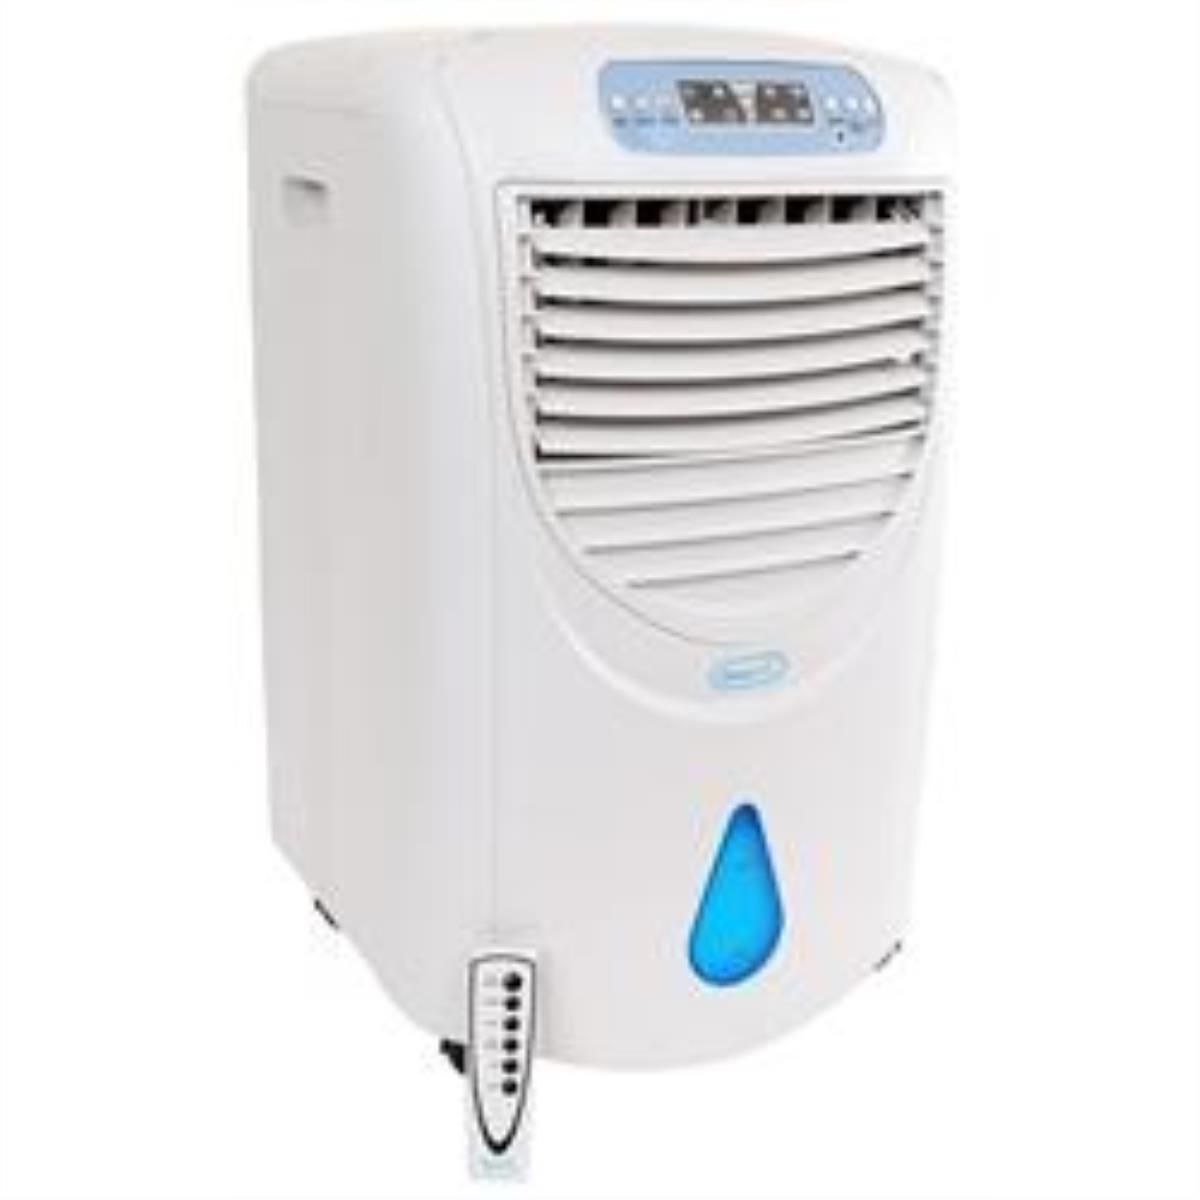 Portable Fan Swamp Cooler Portable Air Cooler Portable Air Conditioners